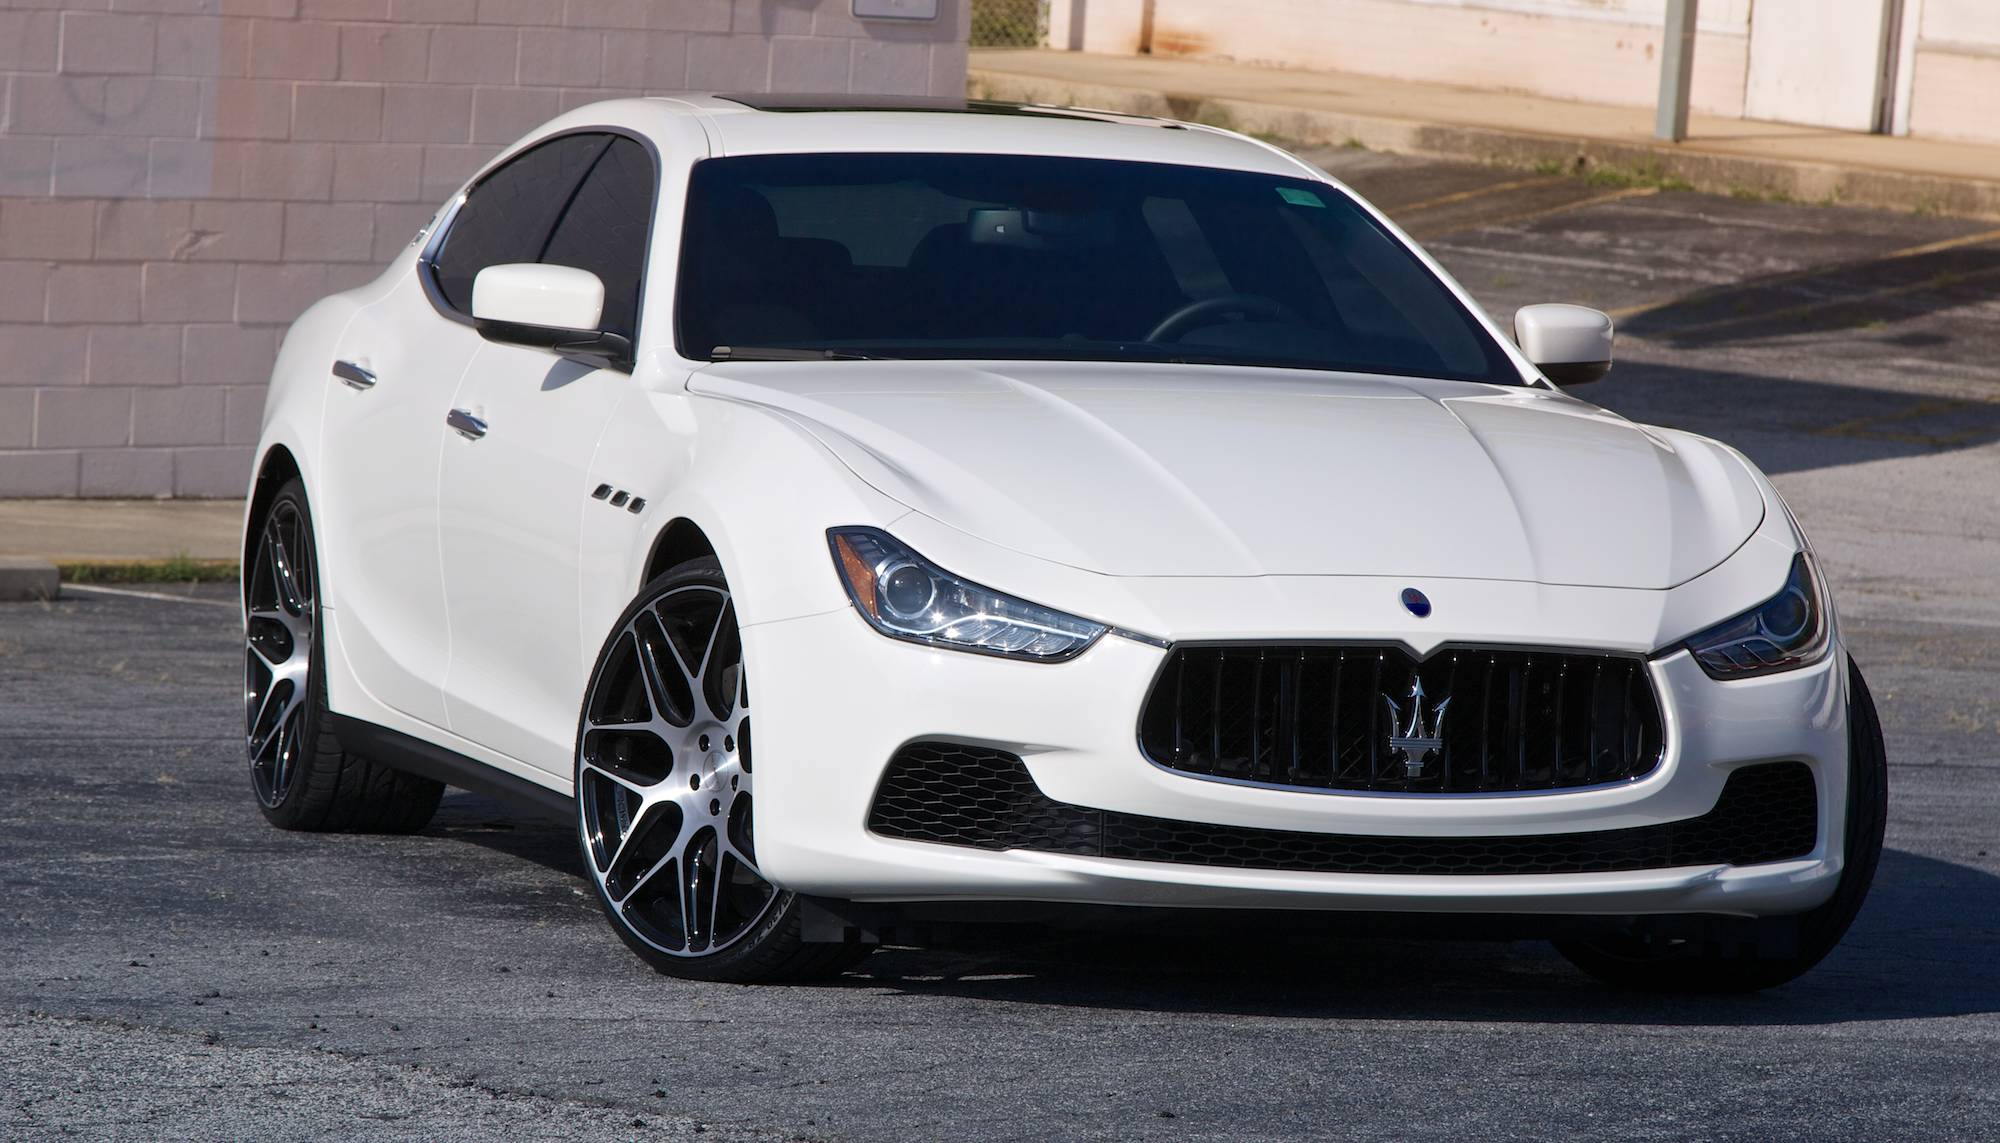 2015 maserati ghibli white 200 interior and exterior images. Black Bedroom Furniture Sets. Home Design Ideas